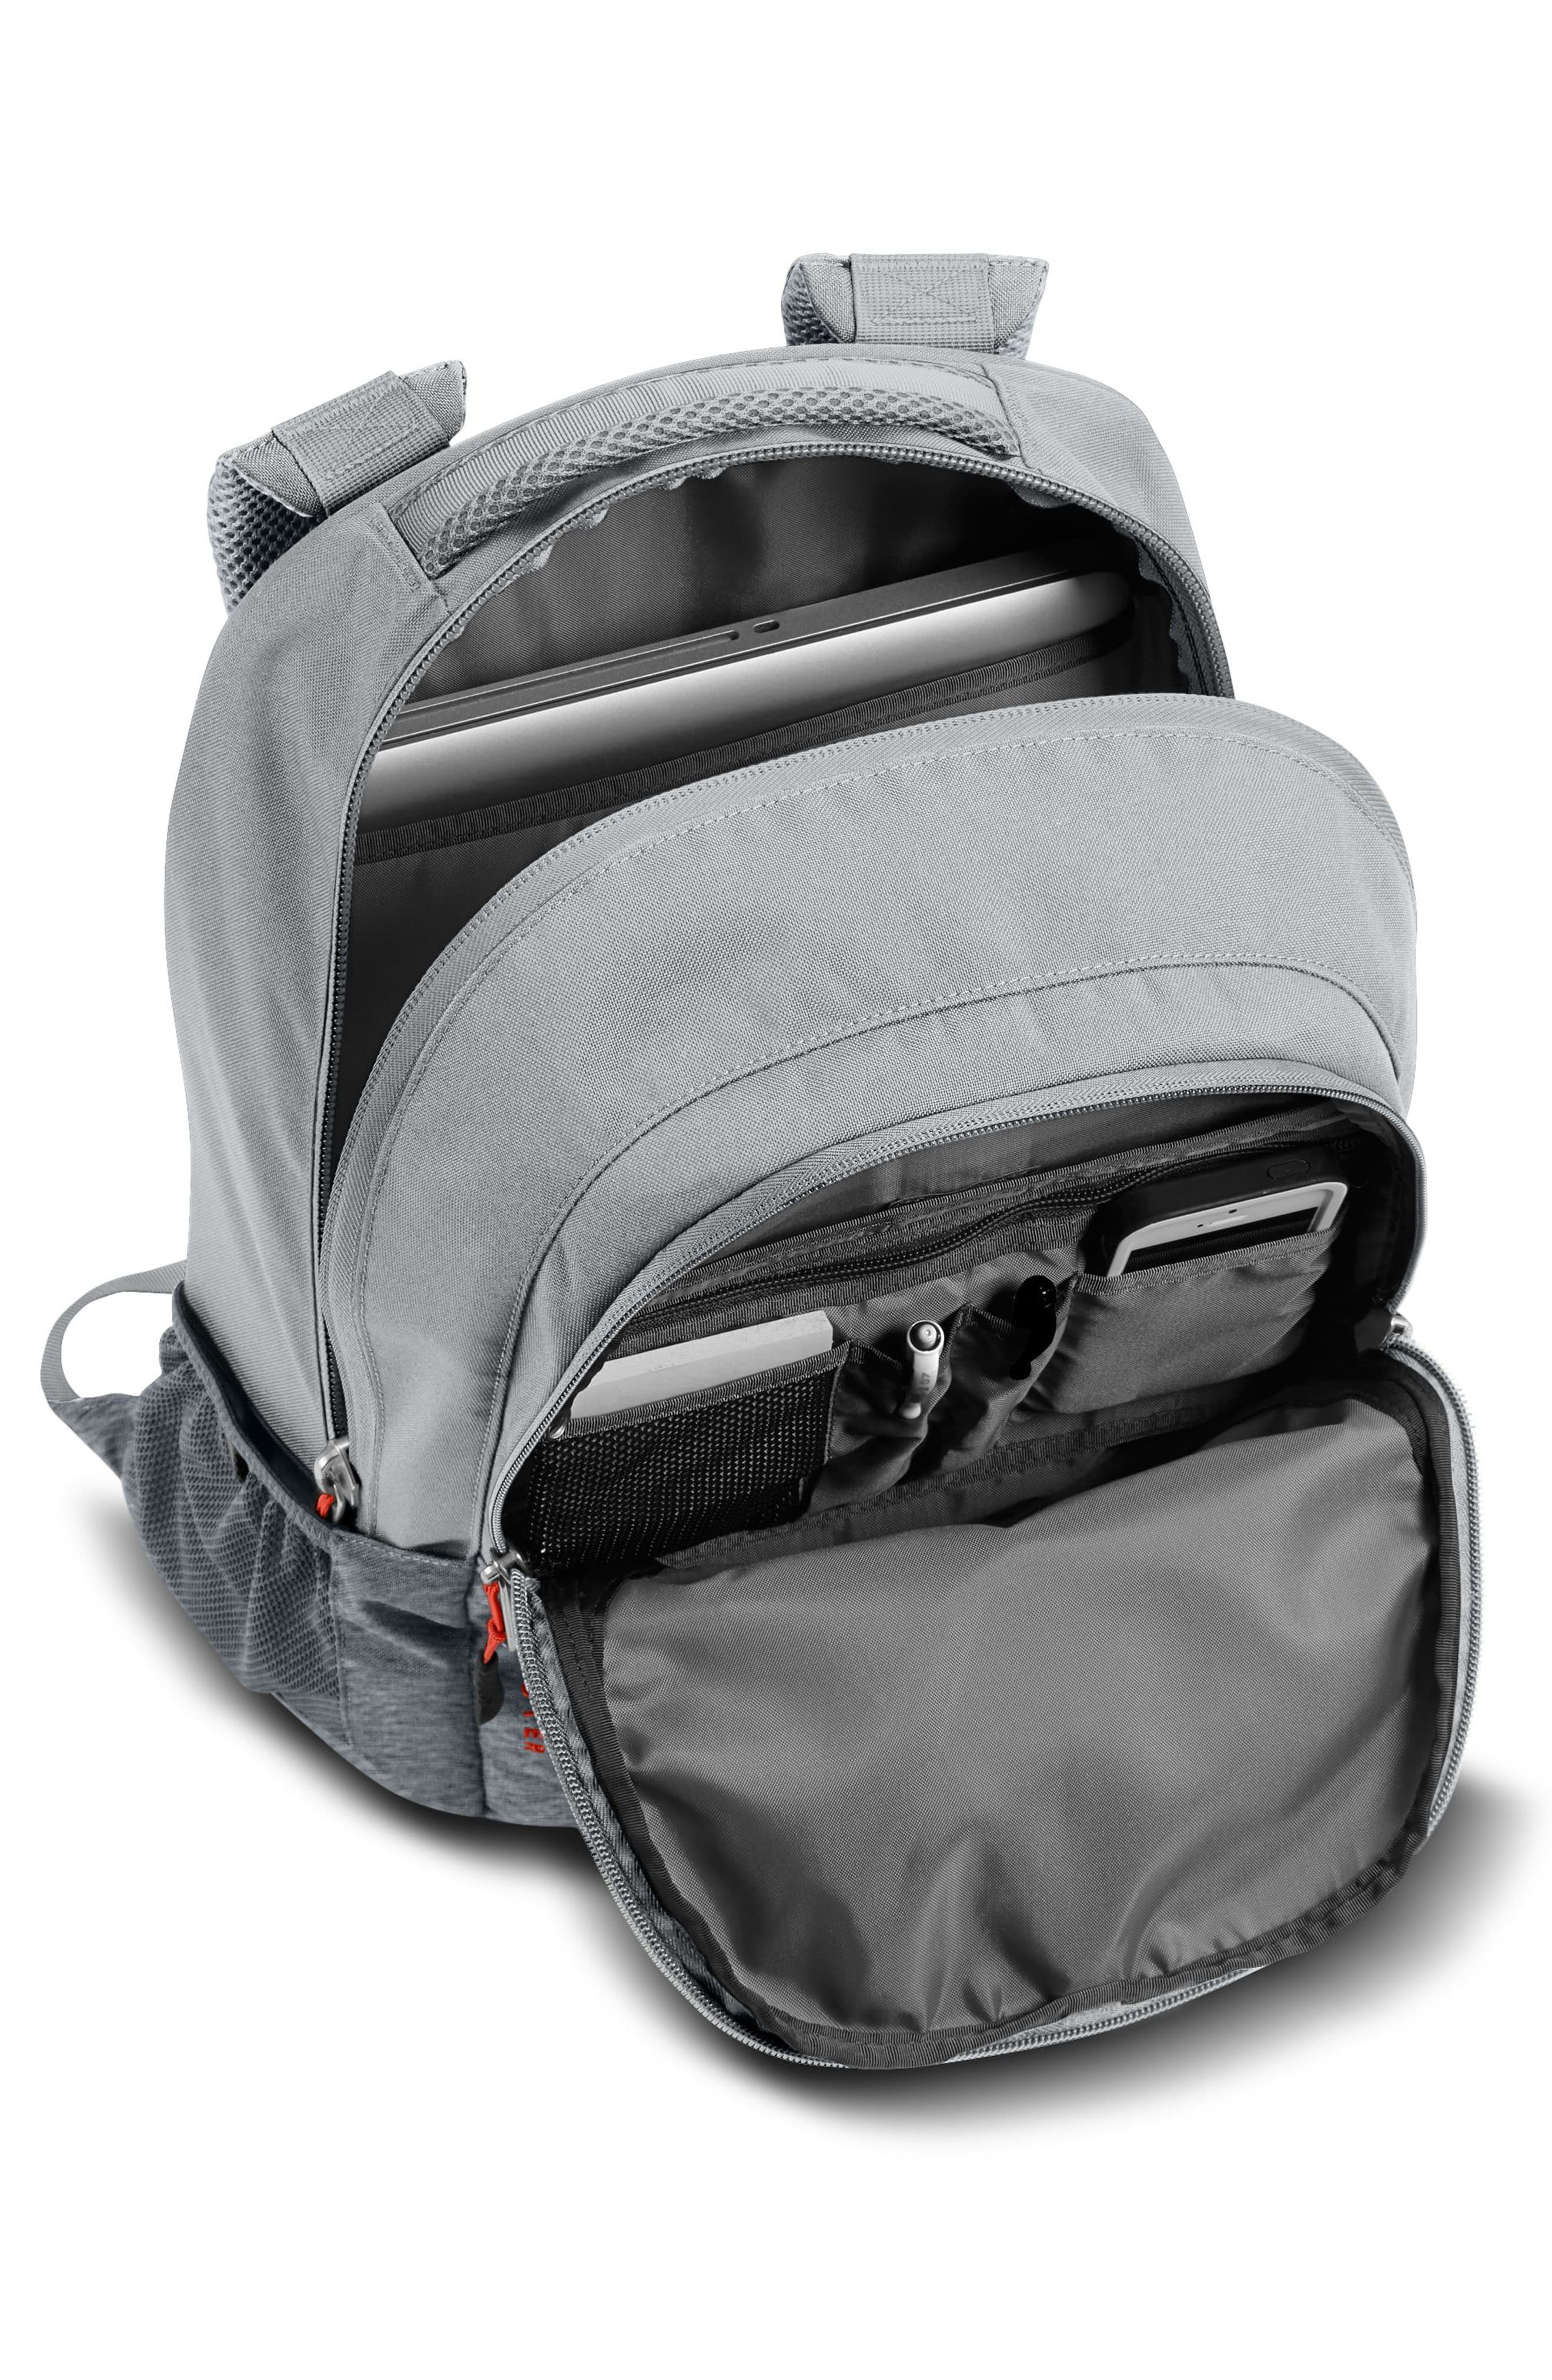 Jester Backpack,                             Alternate thumbnail 3, color,                             GREY DARK HTHER/HIGH RISE GREY